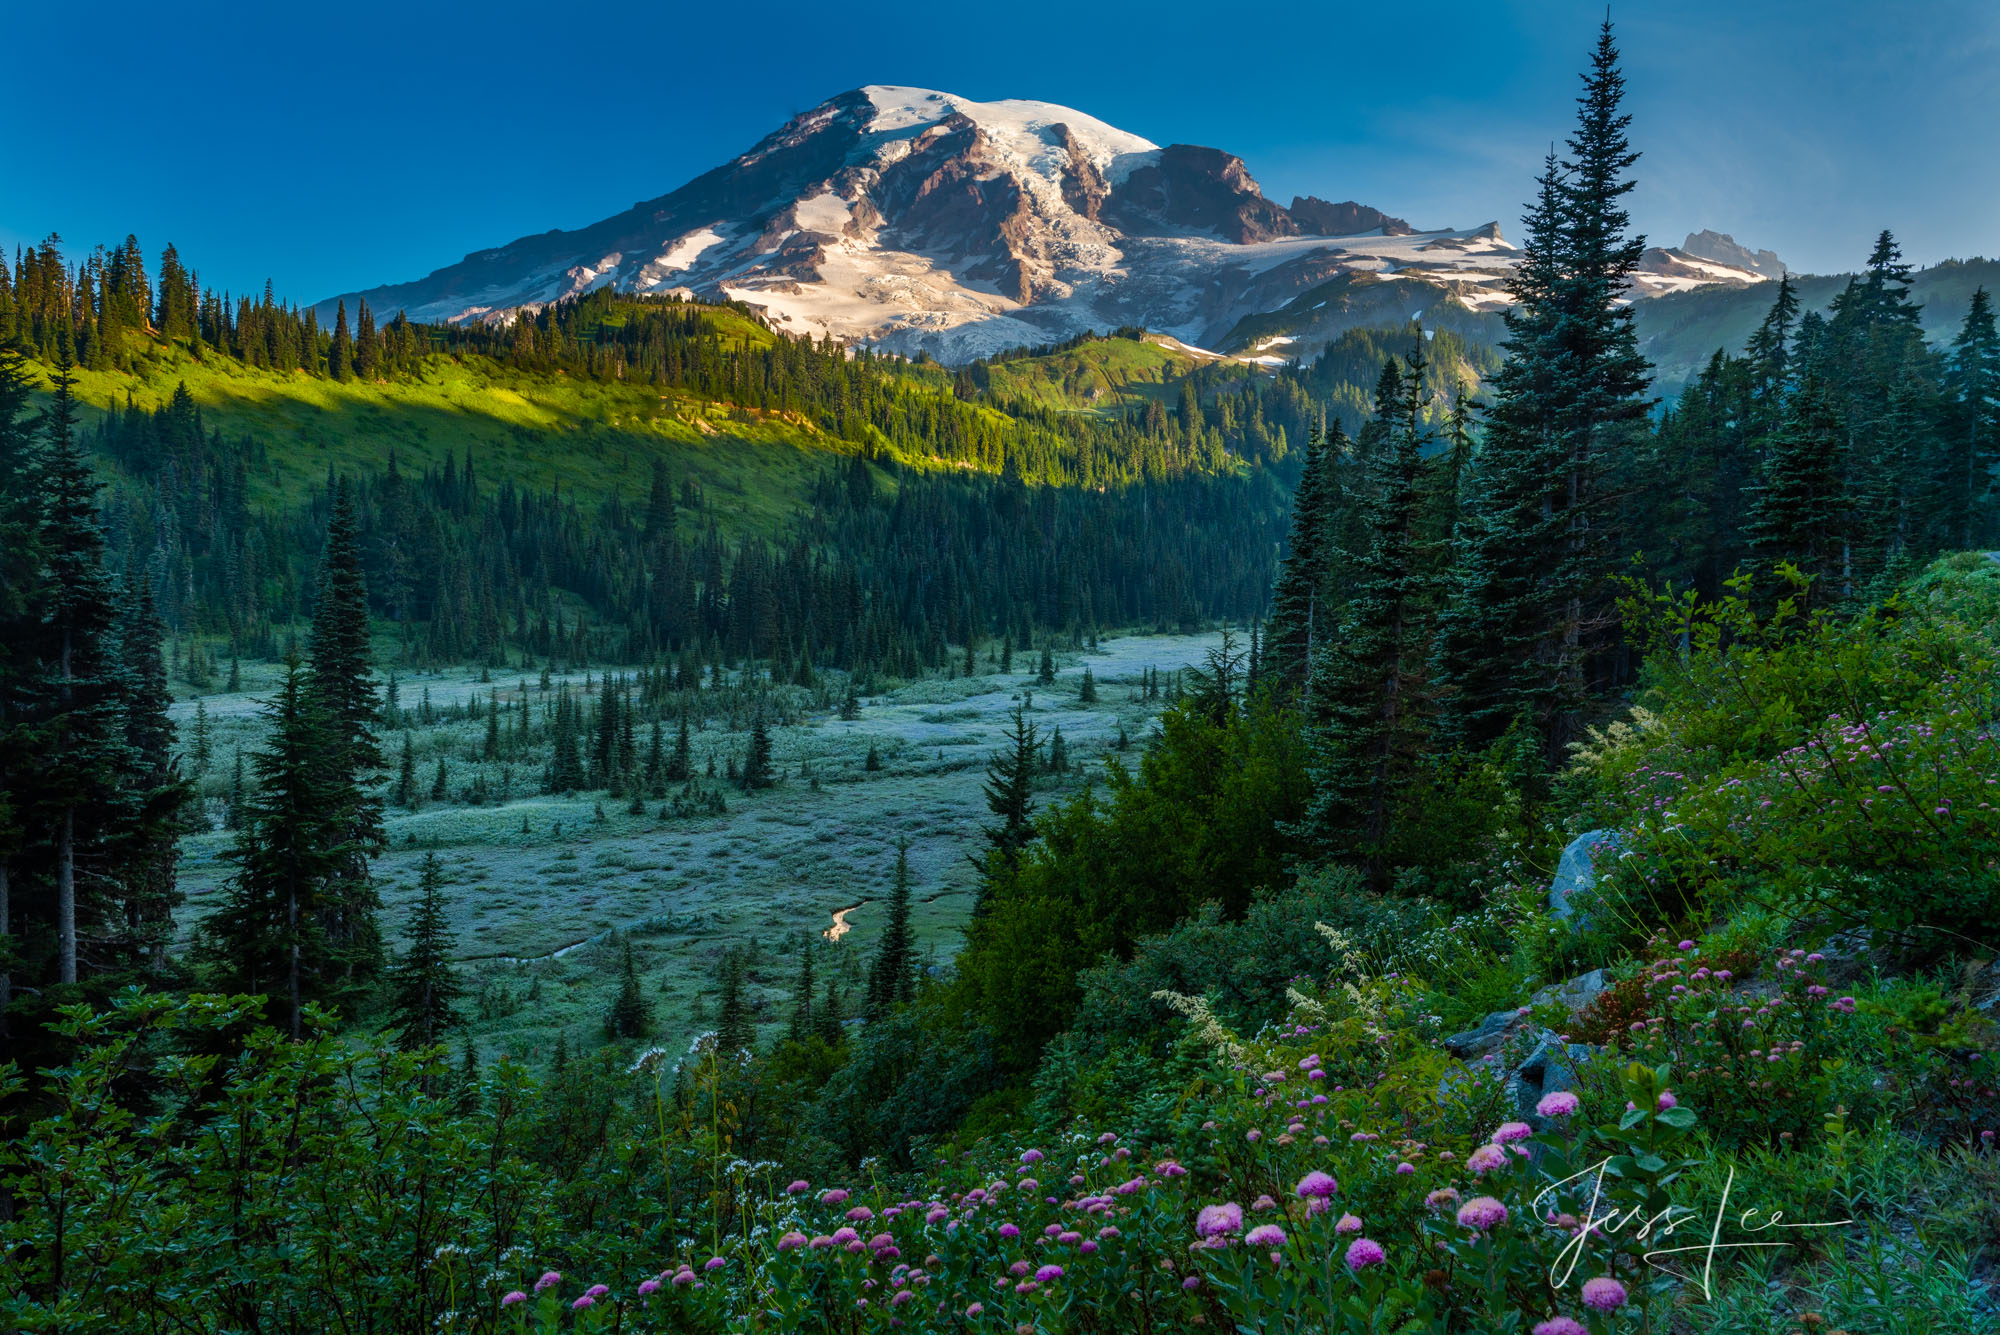 Morning on Mt Rainier, a Limited Edition of 100 Fine Art Photography Prints.